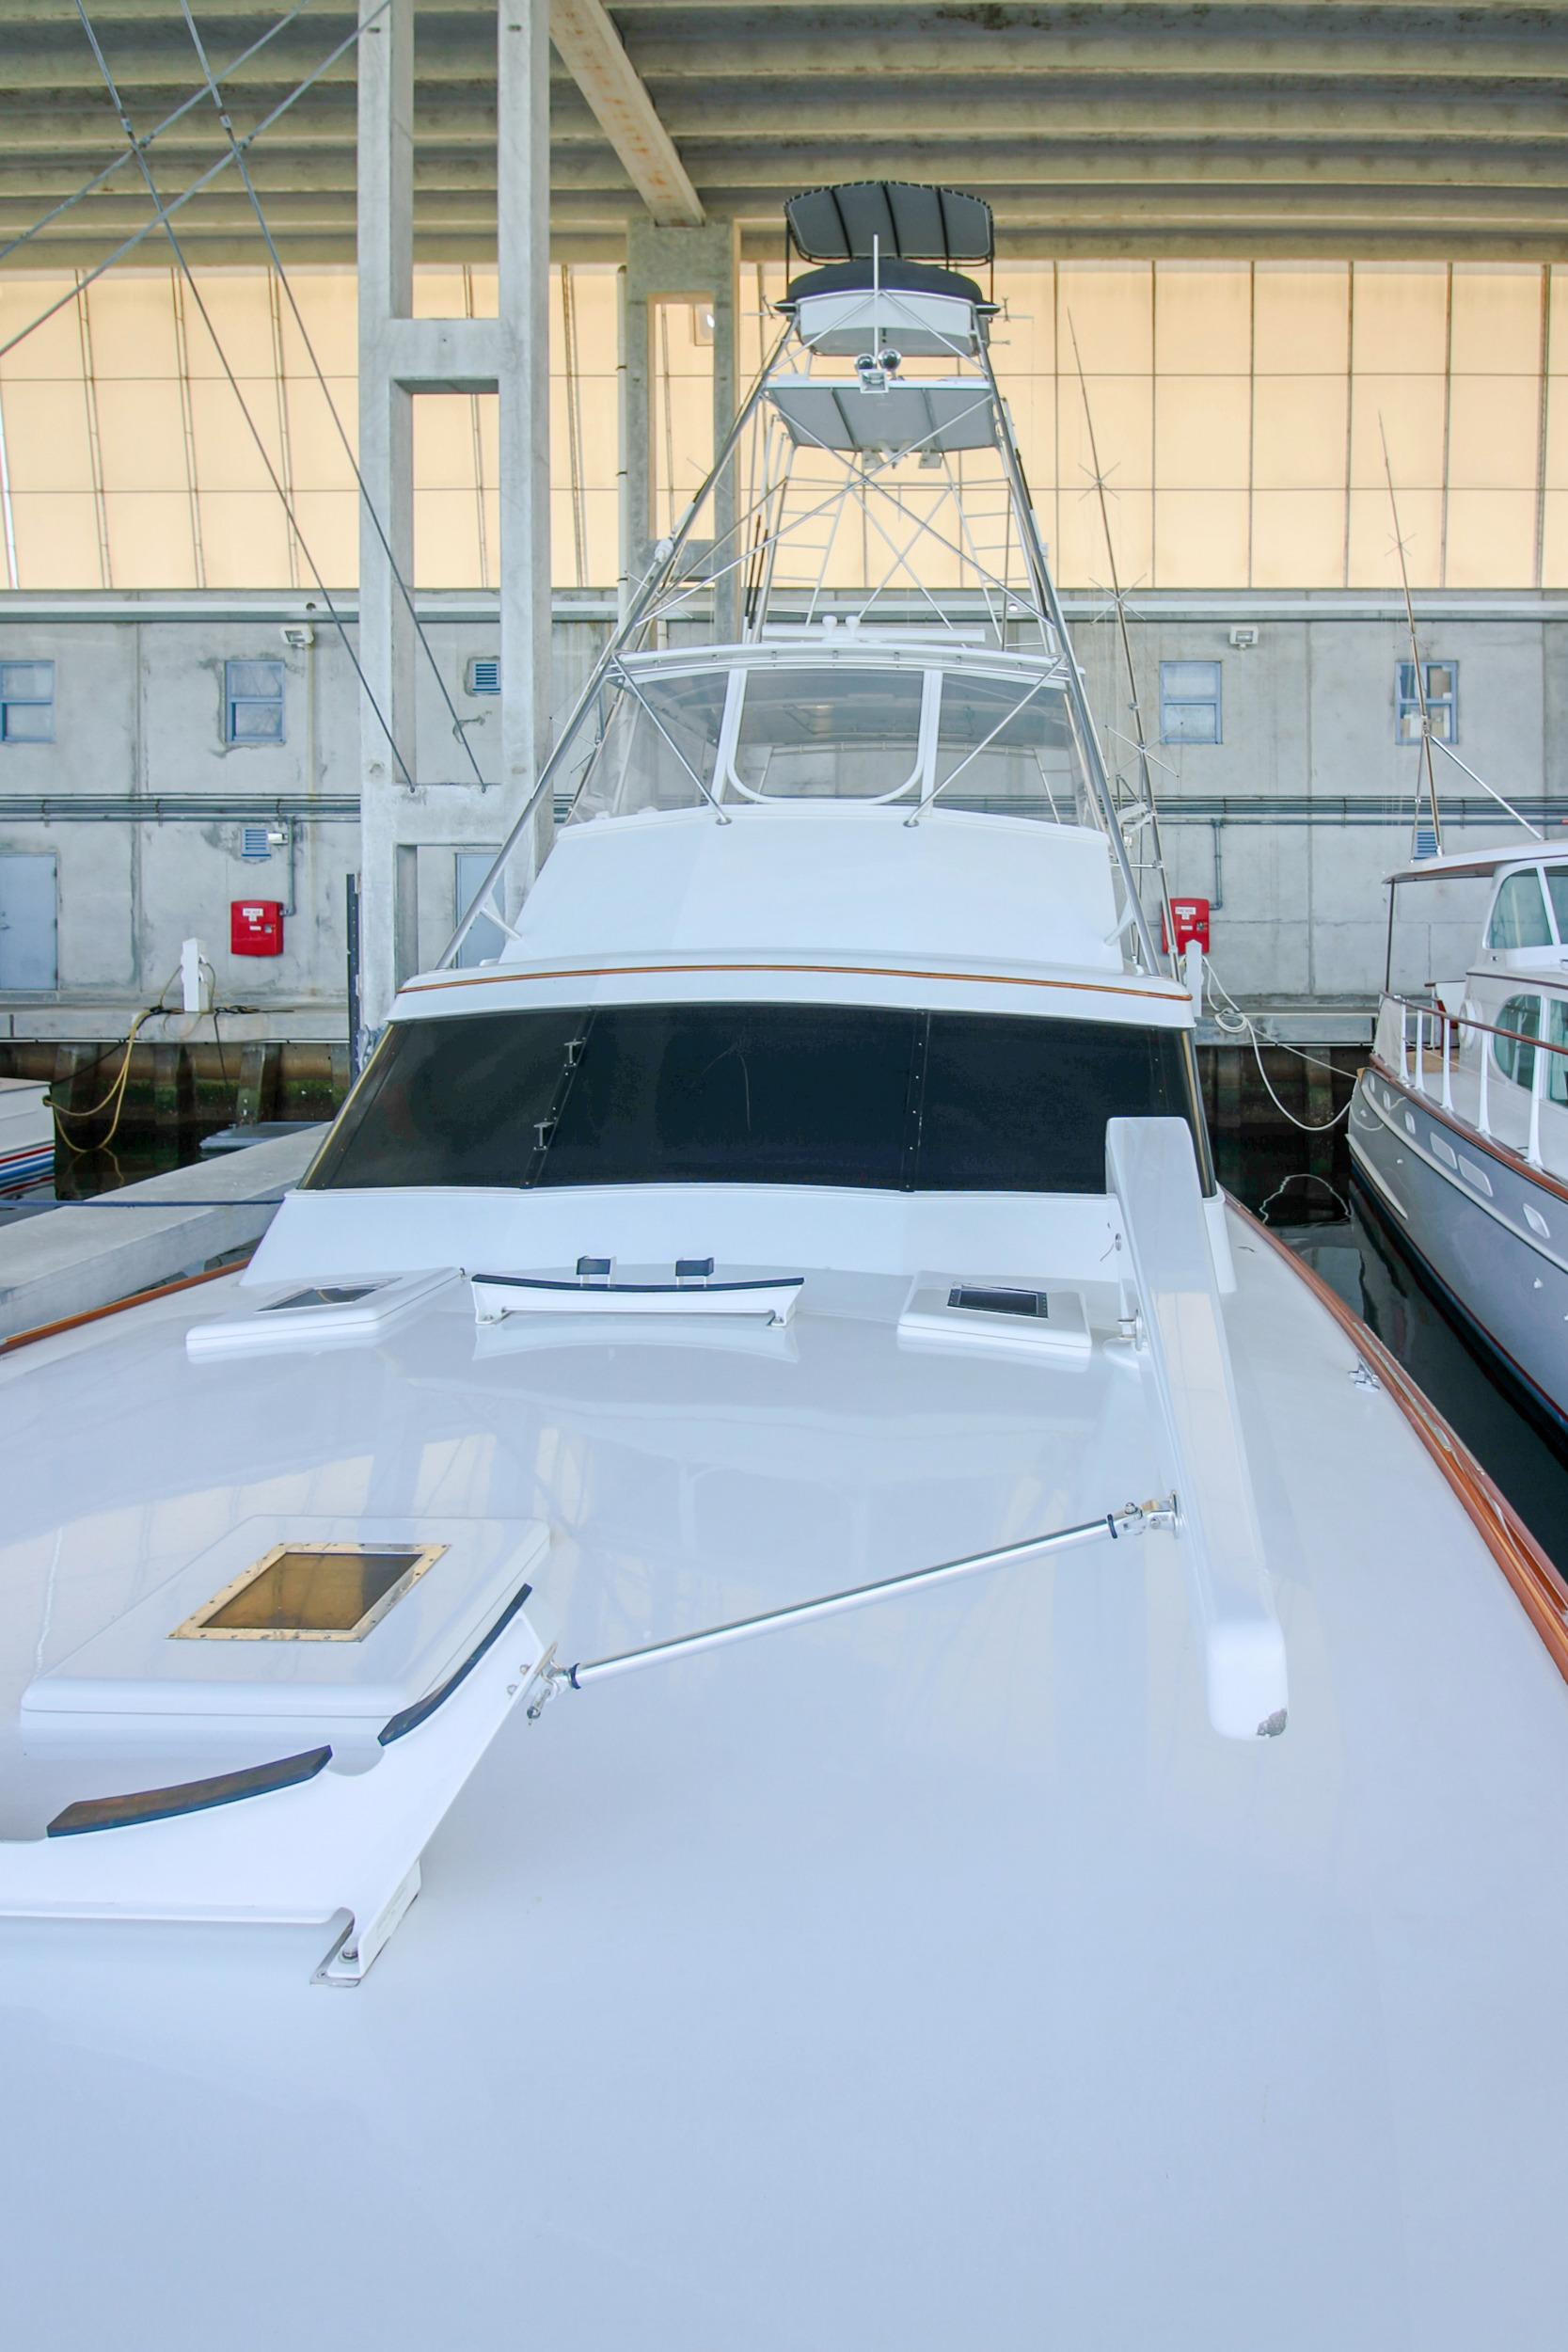 Bow - Looking Aft